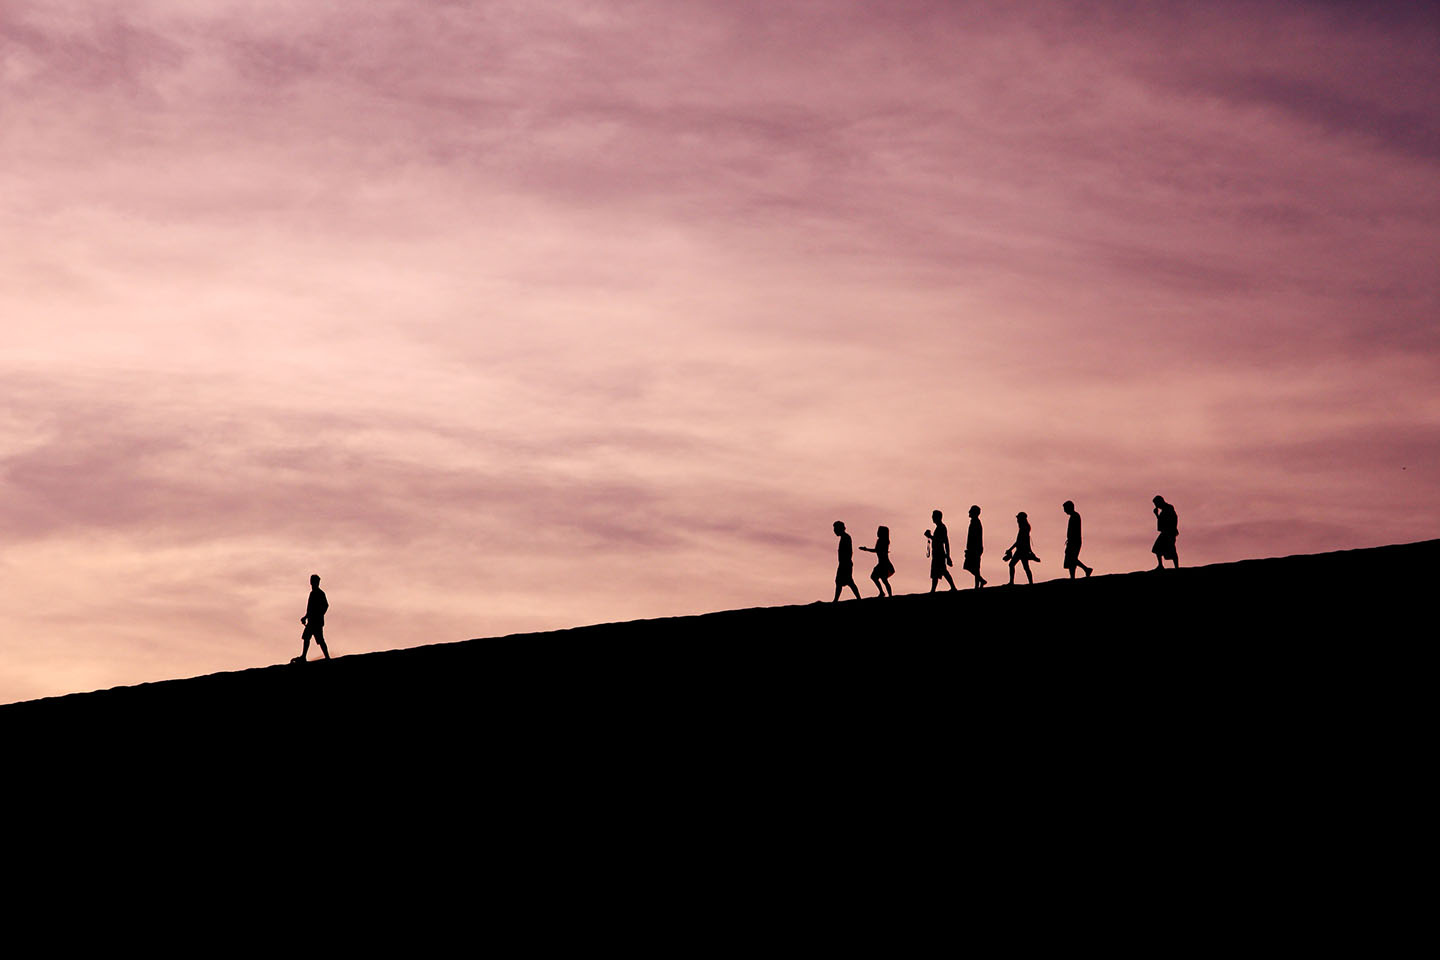 Person standing ahead of a group, leading them forward.